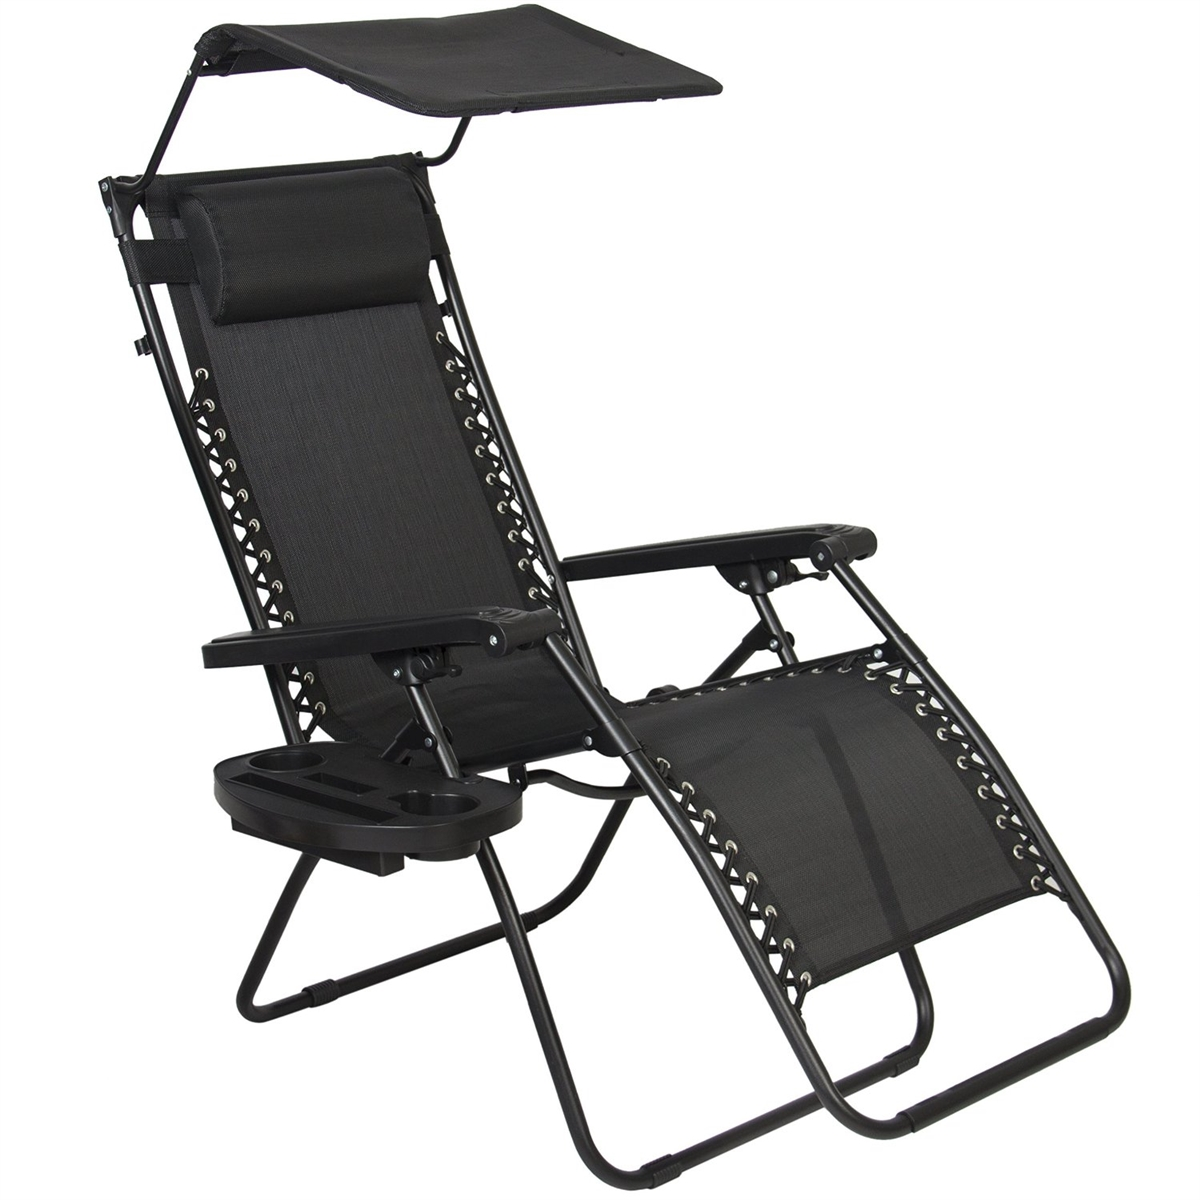 lawn chair with canopy grey side zero gravity patio sunshade and cup holder black